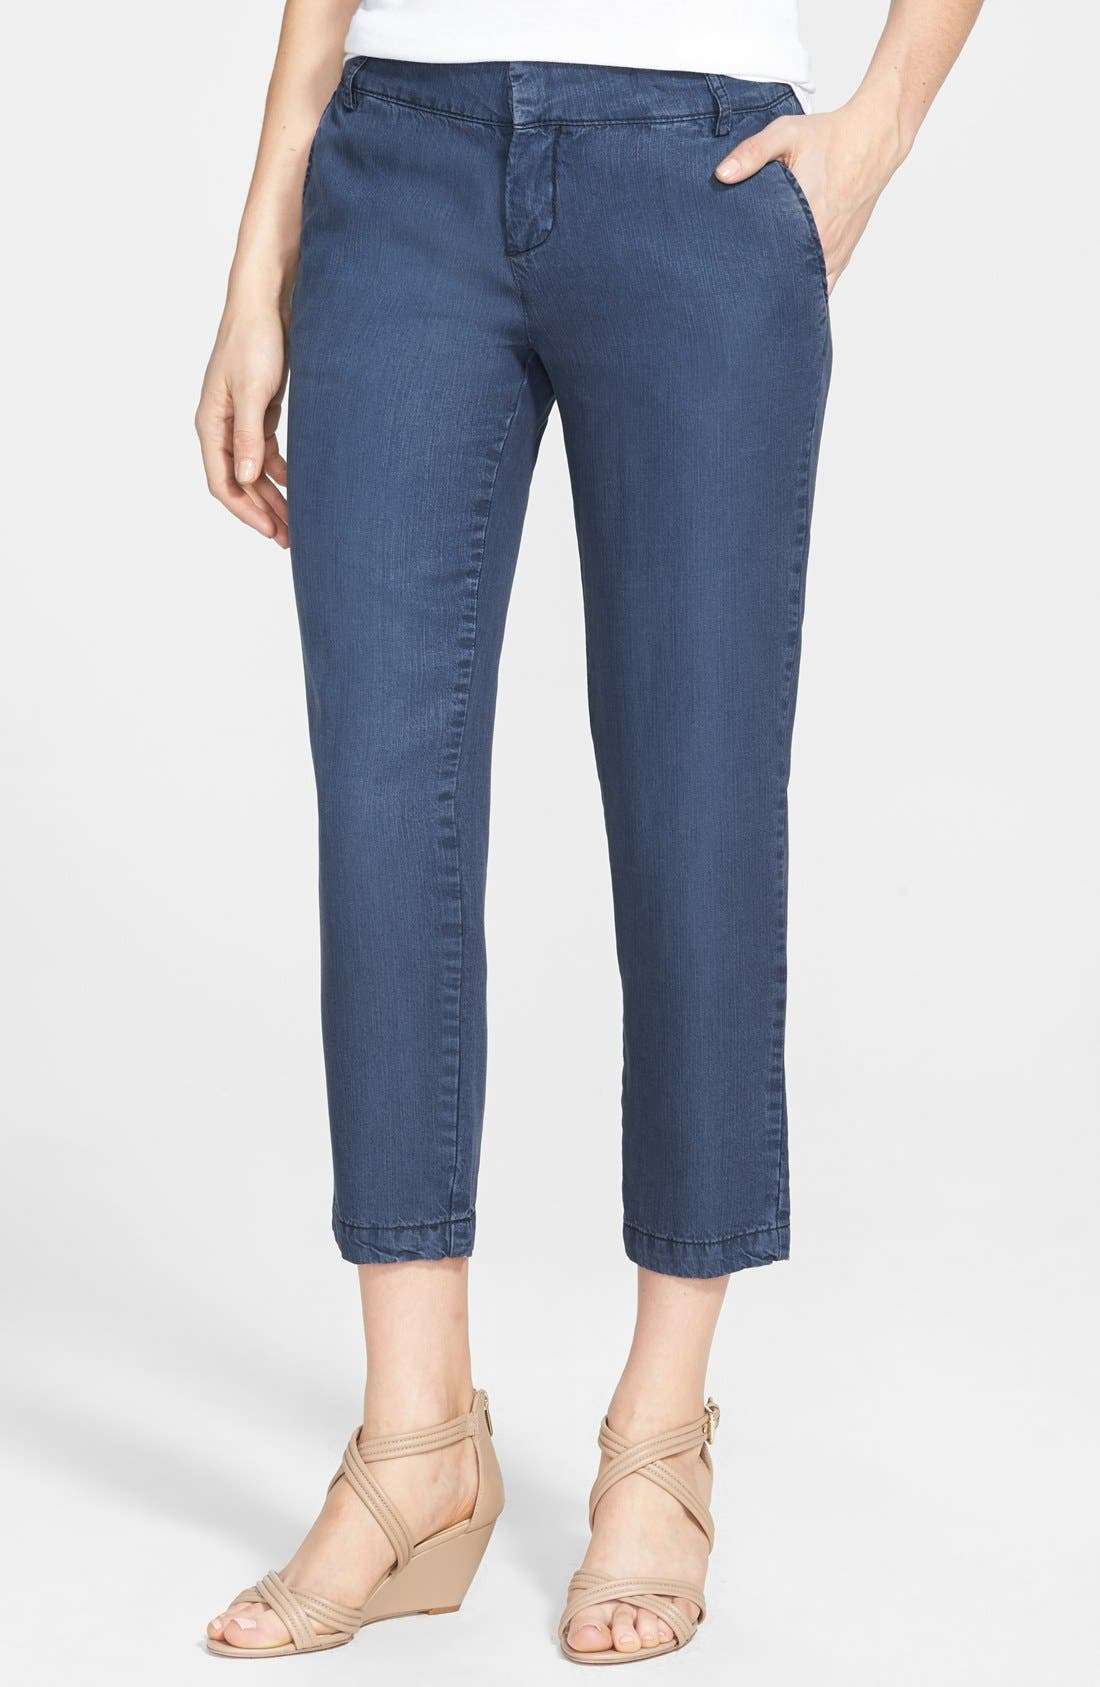 Alternate Image 1 Selected - KUT from the Kloth Relaxed Crop Trouser Jeans